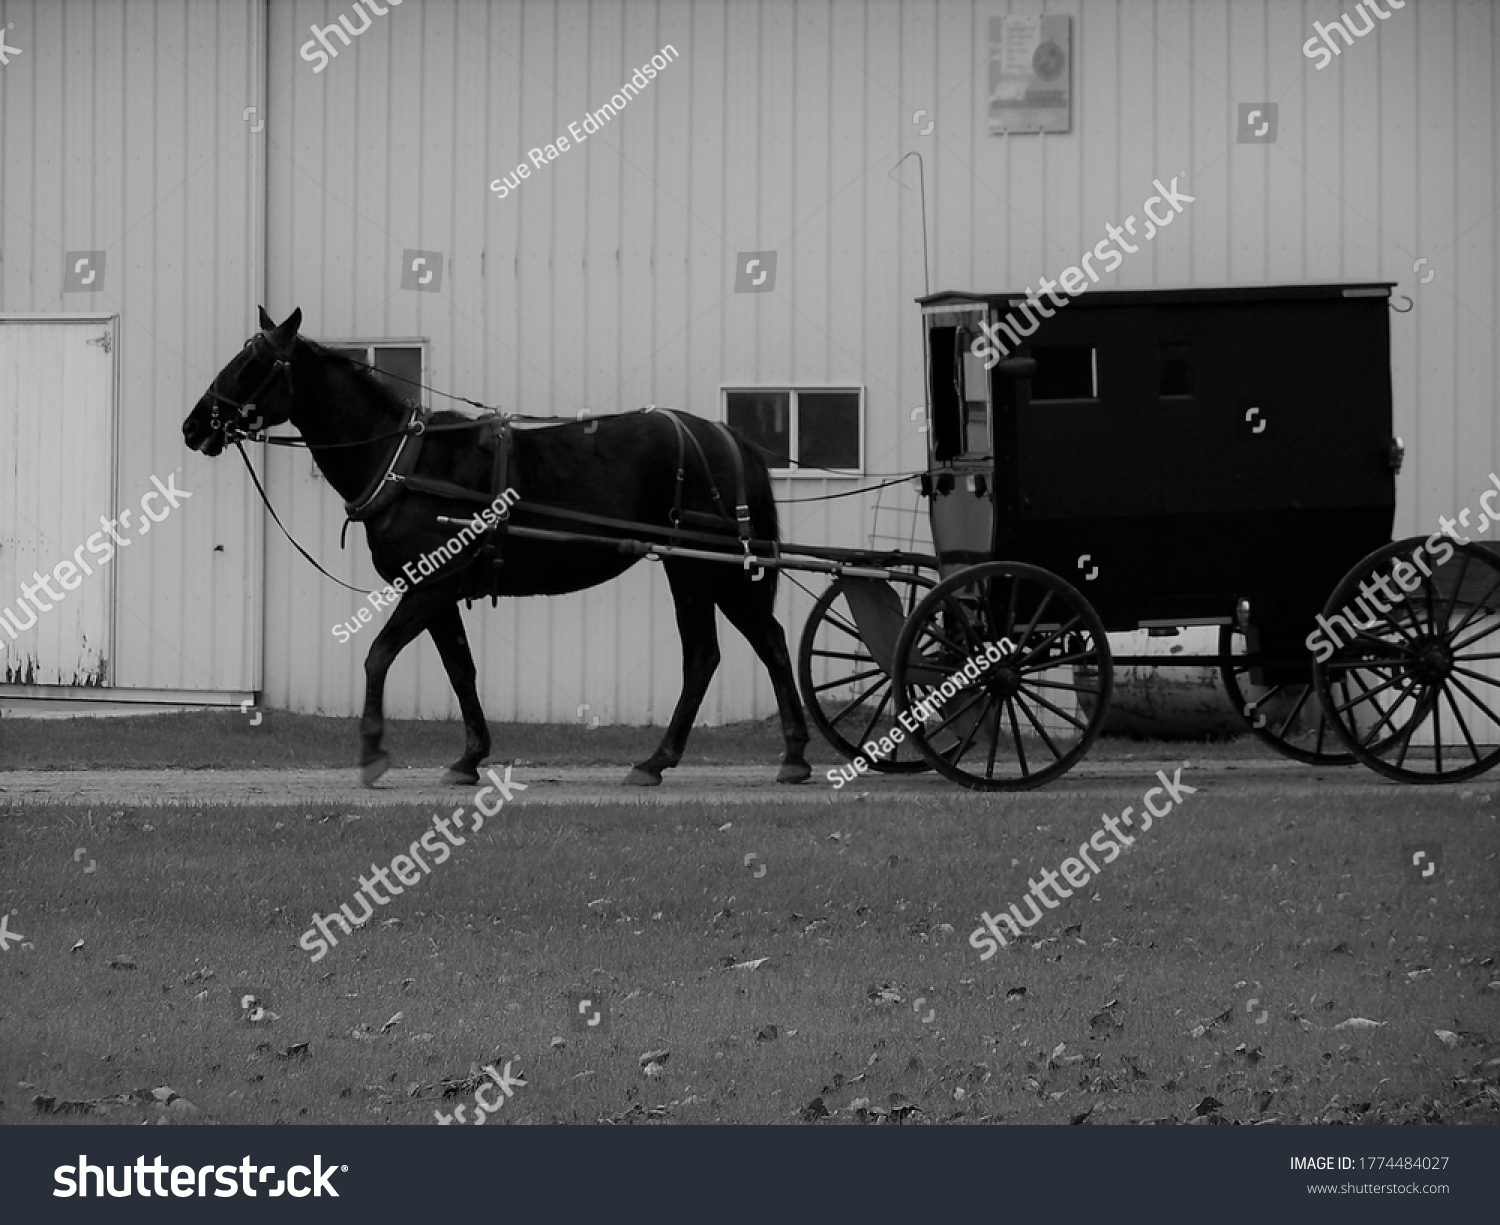 stock-photo-amish-horse-and-buggy-outsid